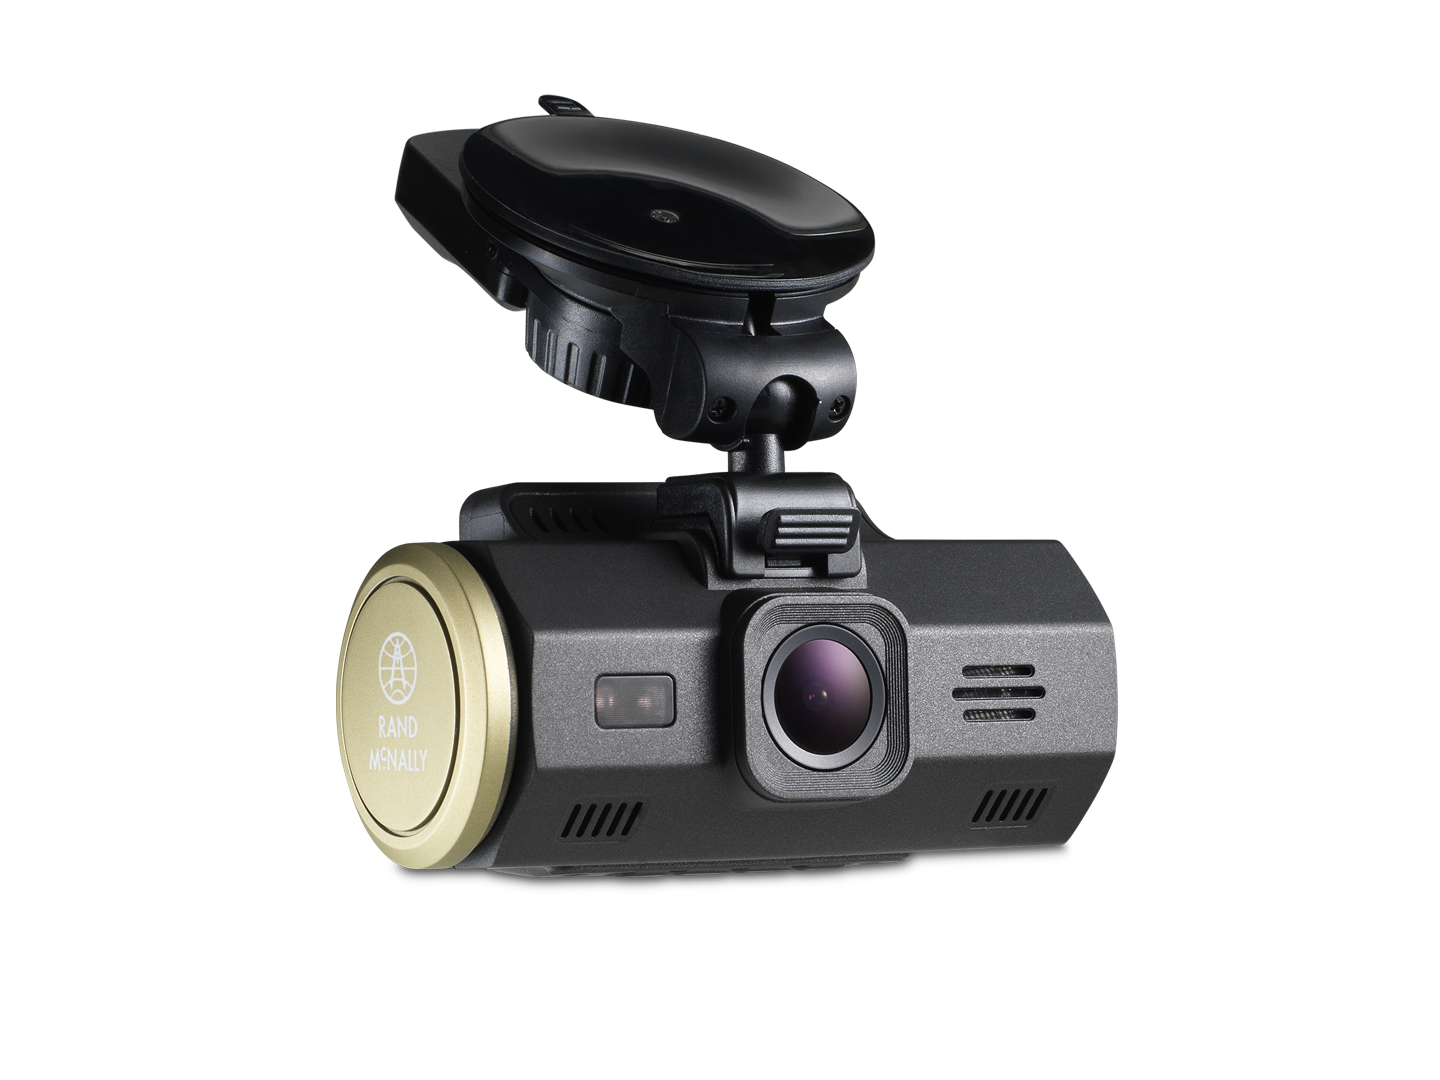 Rand McNally | Dash Cam 300 on map of re, map of usa, map of sn, map of gh, map of ne, map of tx, map of kansas, map of wa, map of mh, map of ia, map of ut, map of ps, map of le, map of ci, map of mt, map of sh, map of nd, map of wyoming, map of wi, map of cl,